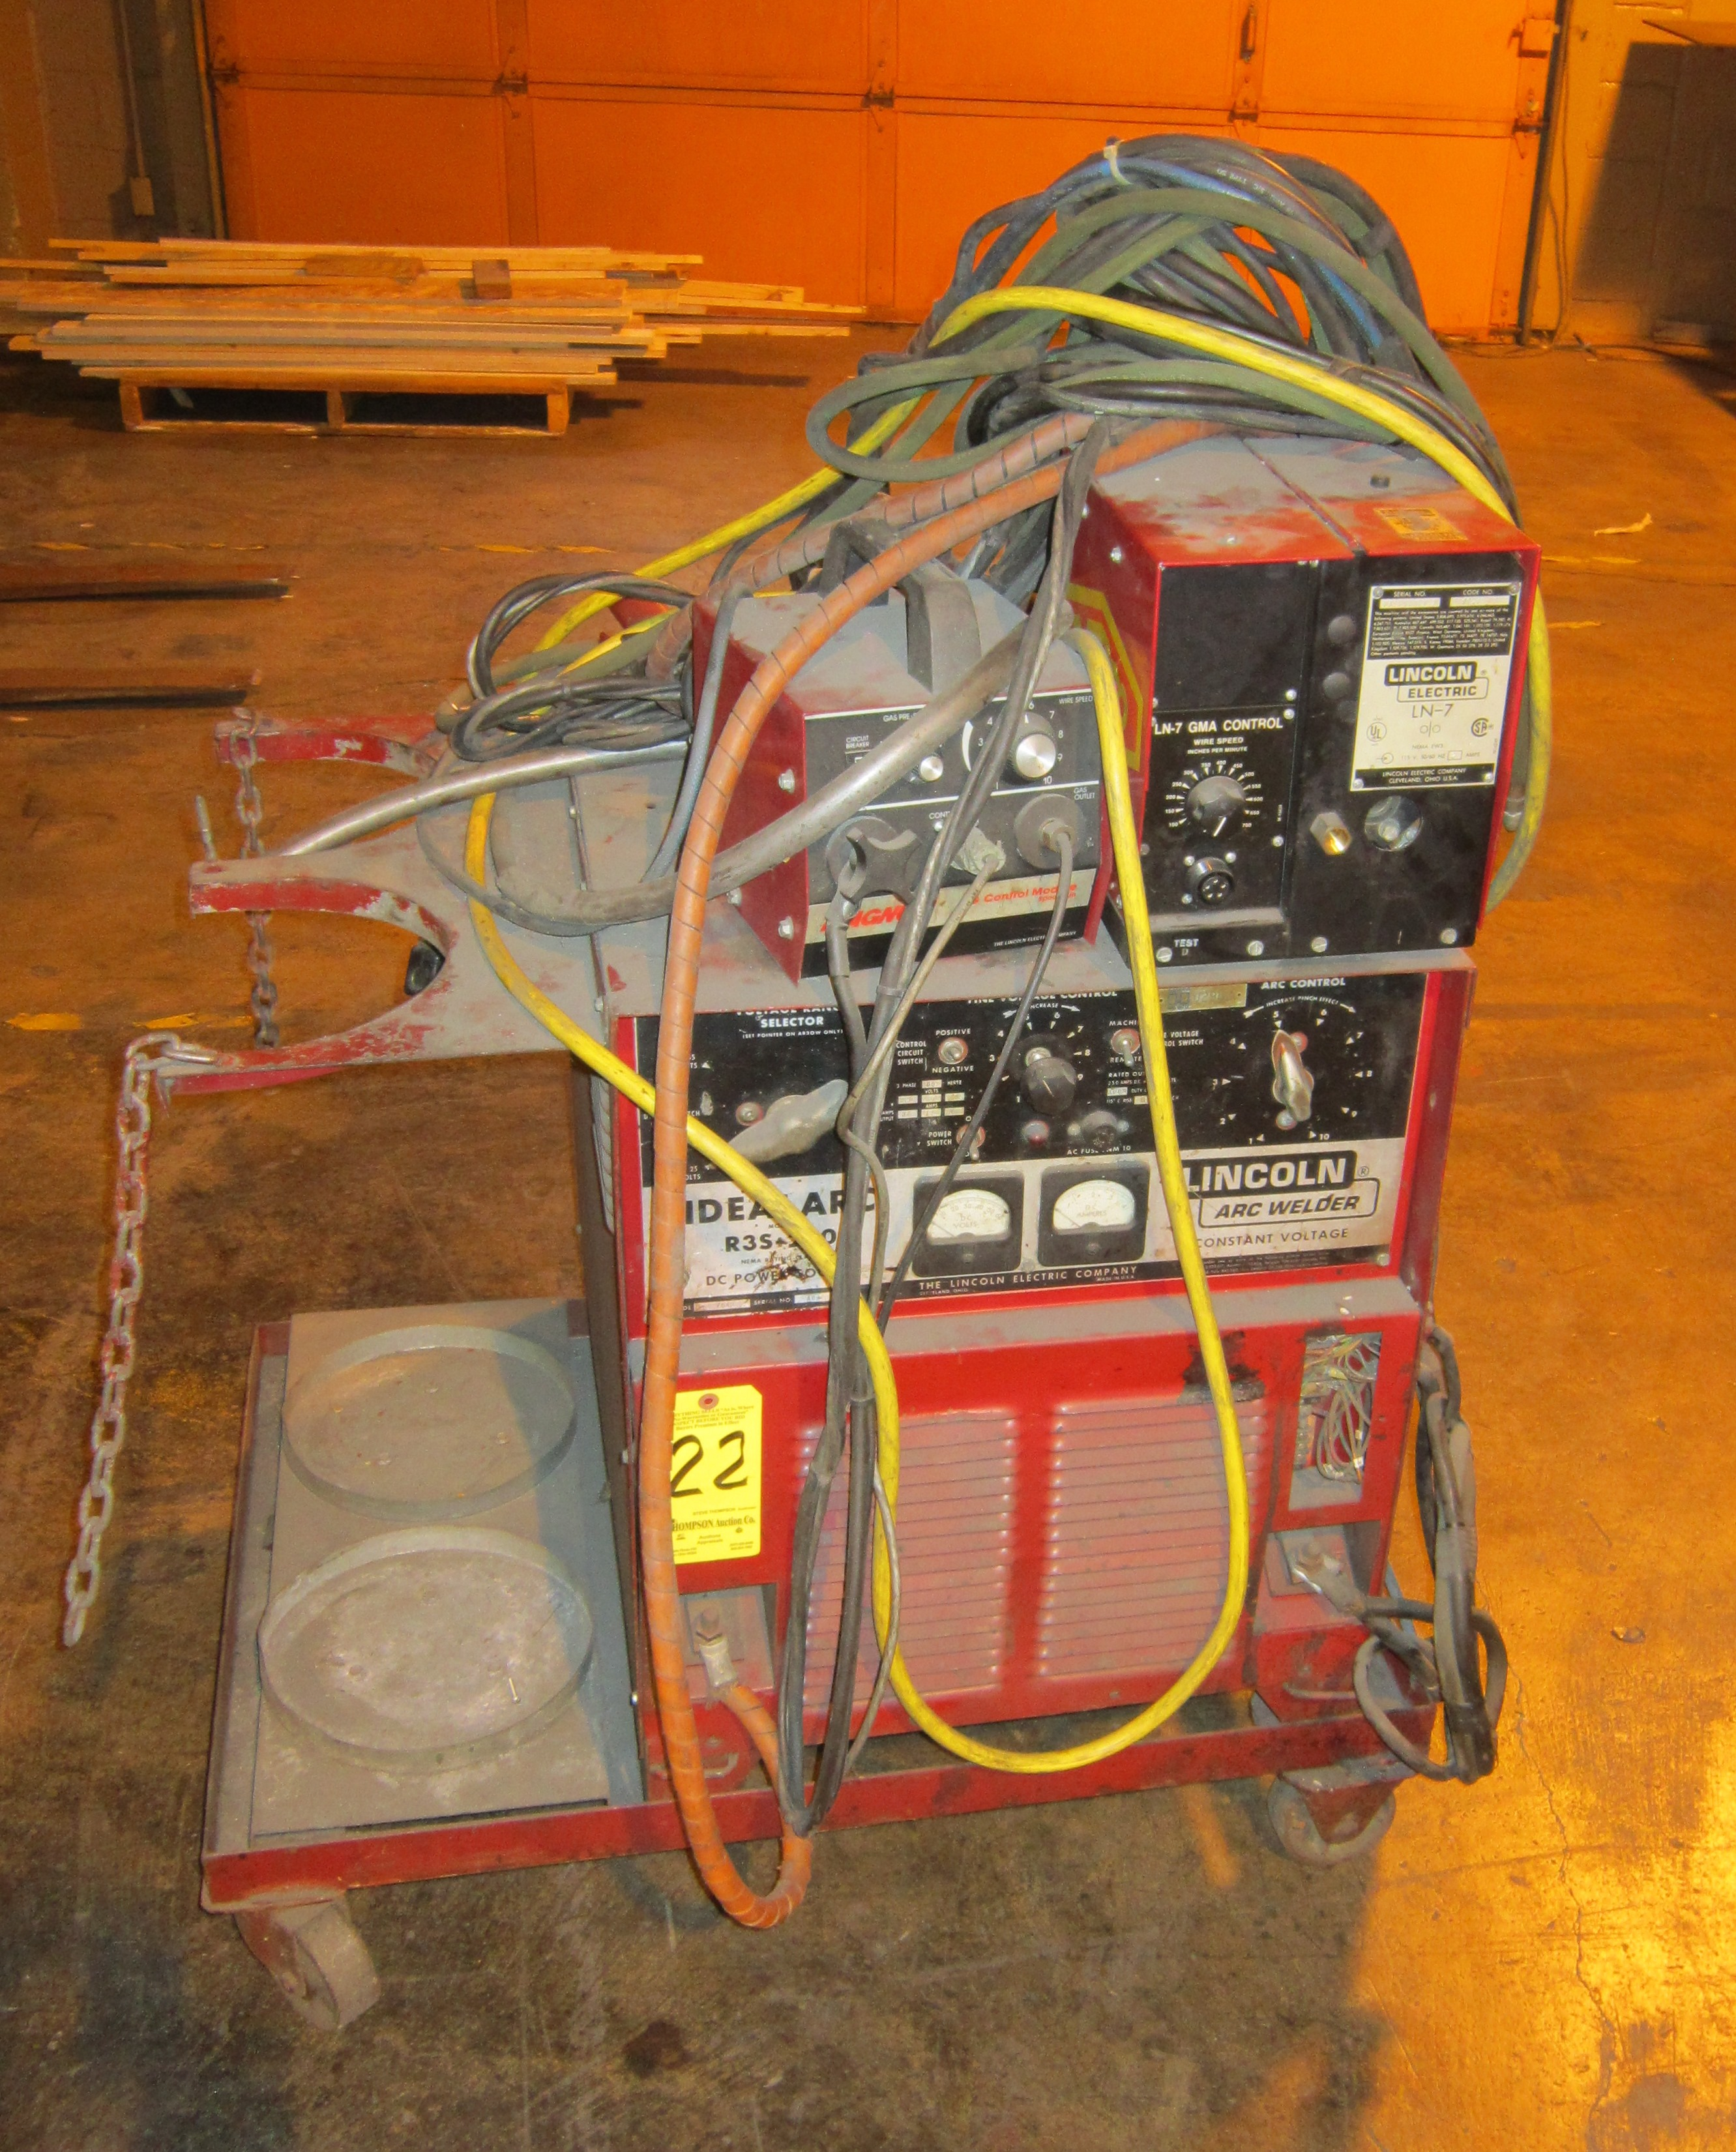 Lincoln Idealarc 250 Wiring Diagram Library Boat Electrical Diagrams 404 Page Not Found Error Ever Model R3s Mig Welder S N Ac89839 Sa 200